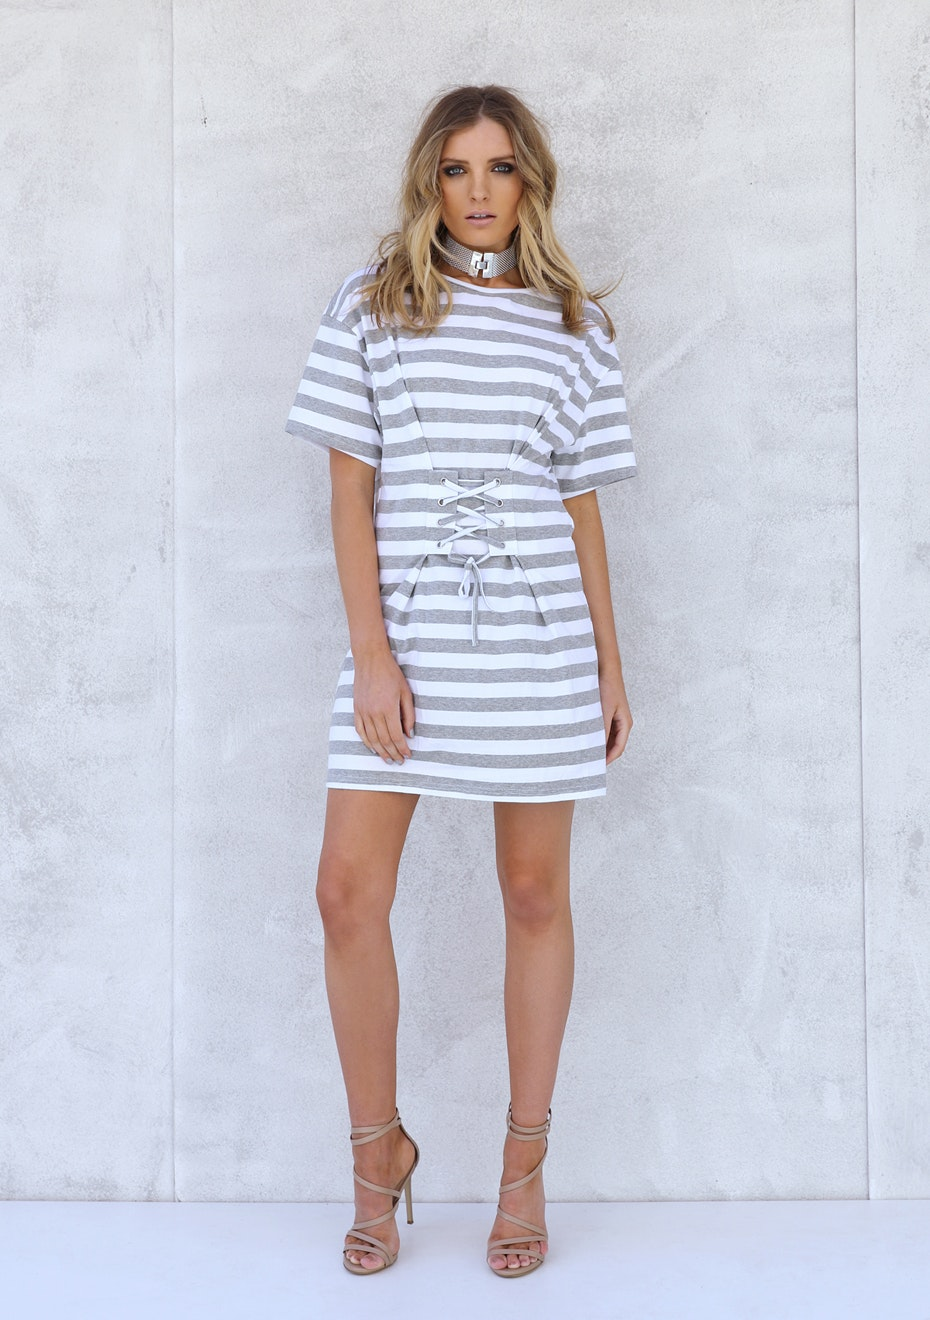 Madison - IVY TIE DRESS - GREY STRIPE